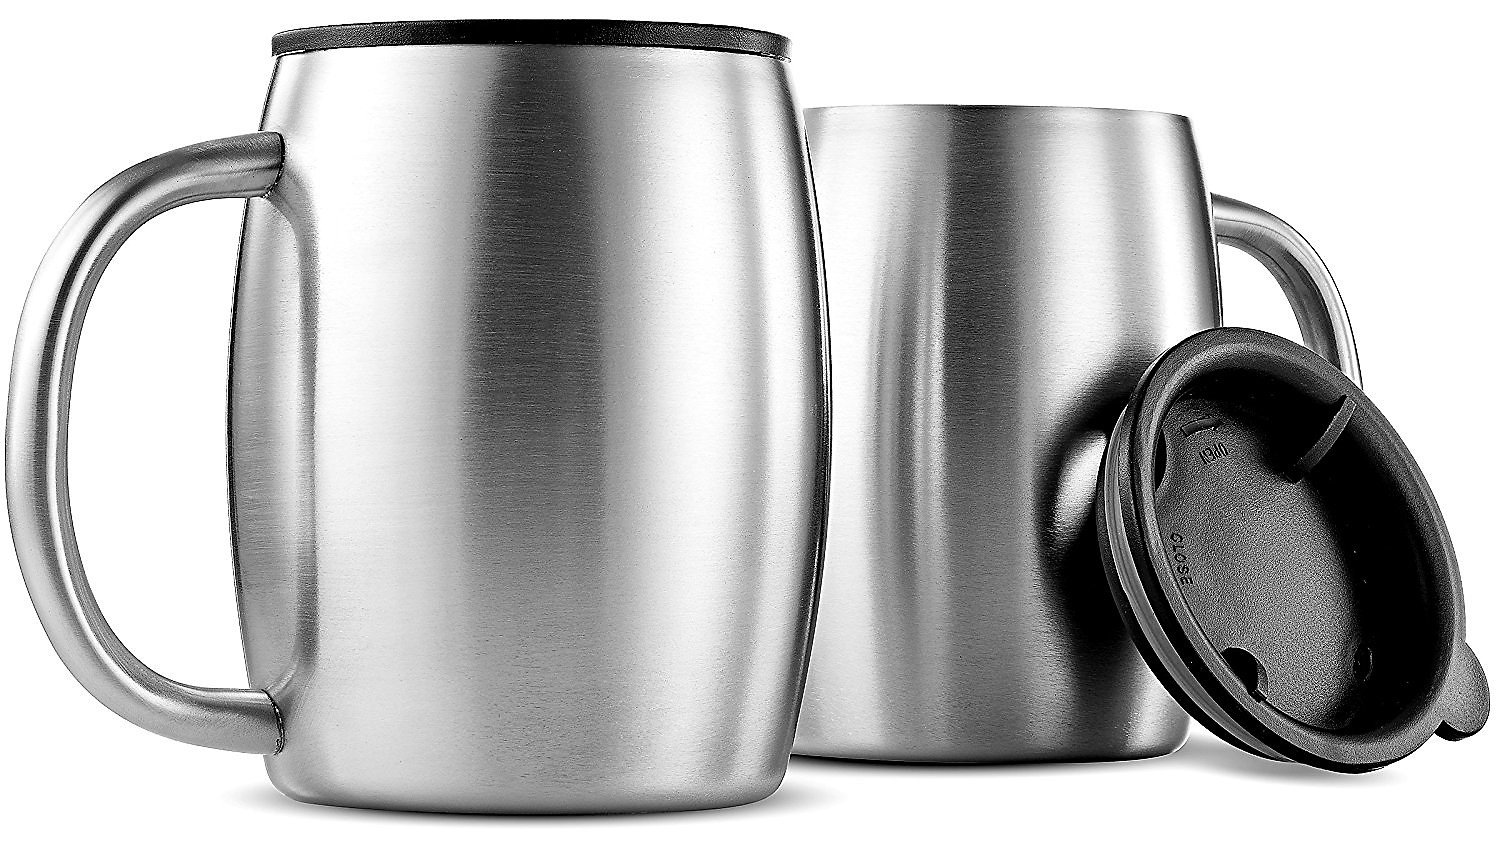 Stainless Steel Coffee Mug by Drink and Kitchen - Set of 2 - Double Walled Insulated Travel Beer Mug with Handle Plus Silicone Lid - 14oz - Home Office Camping - Spill-Proof - BPA Free - Eco-Friendly